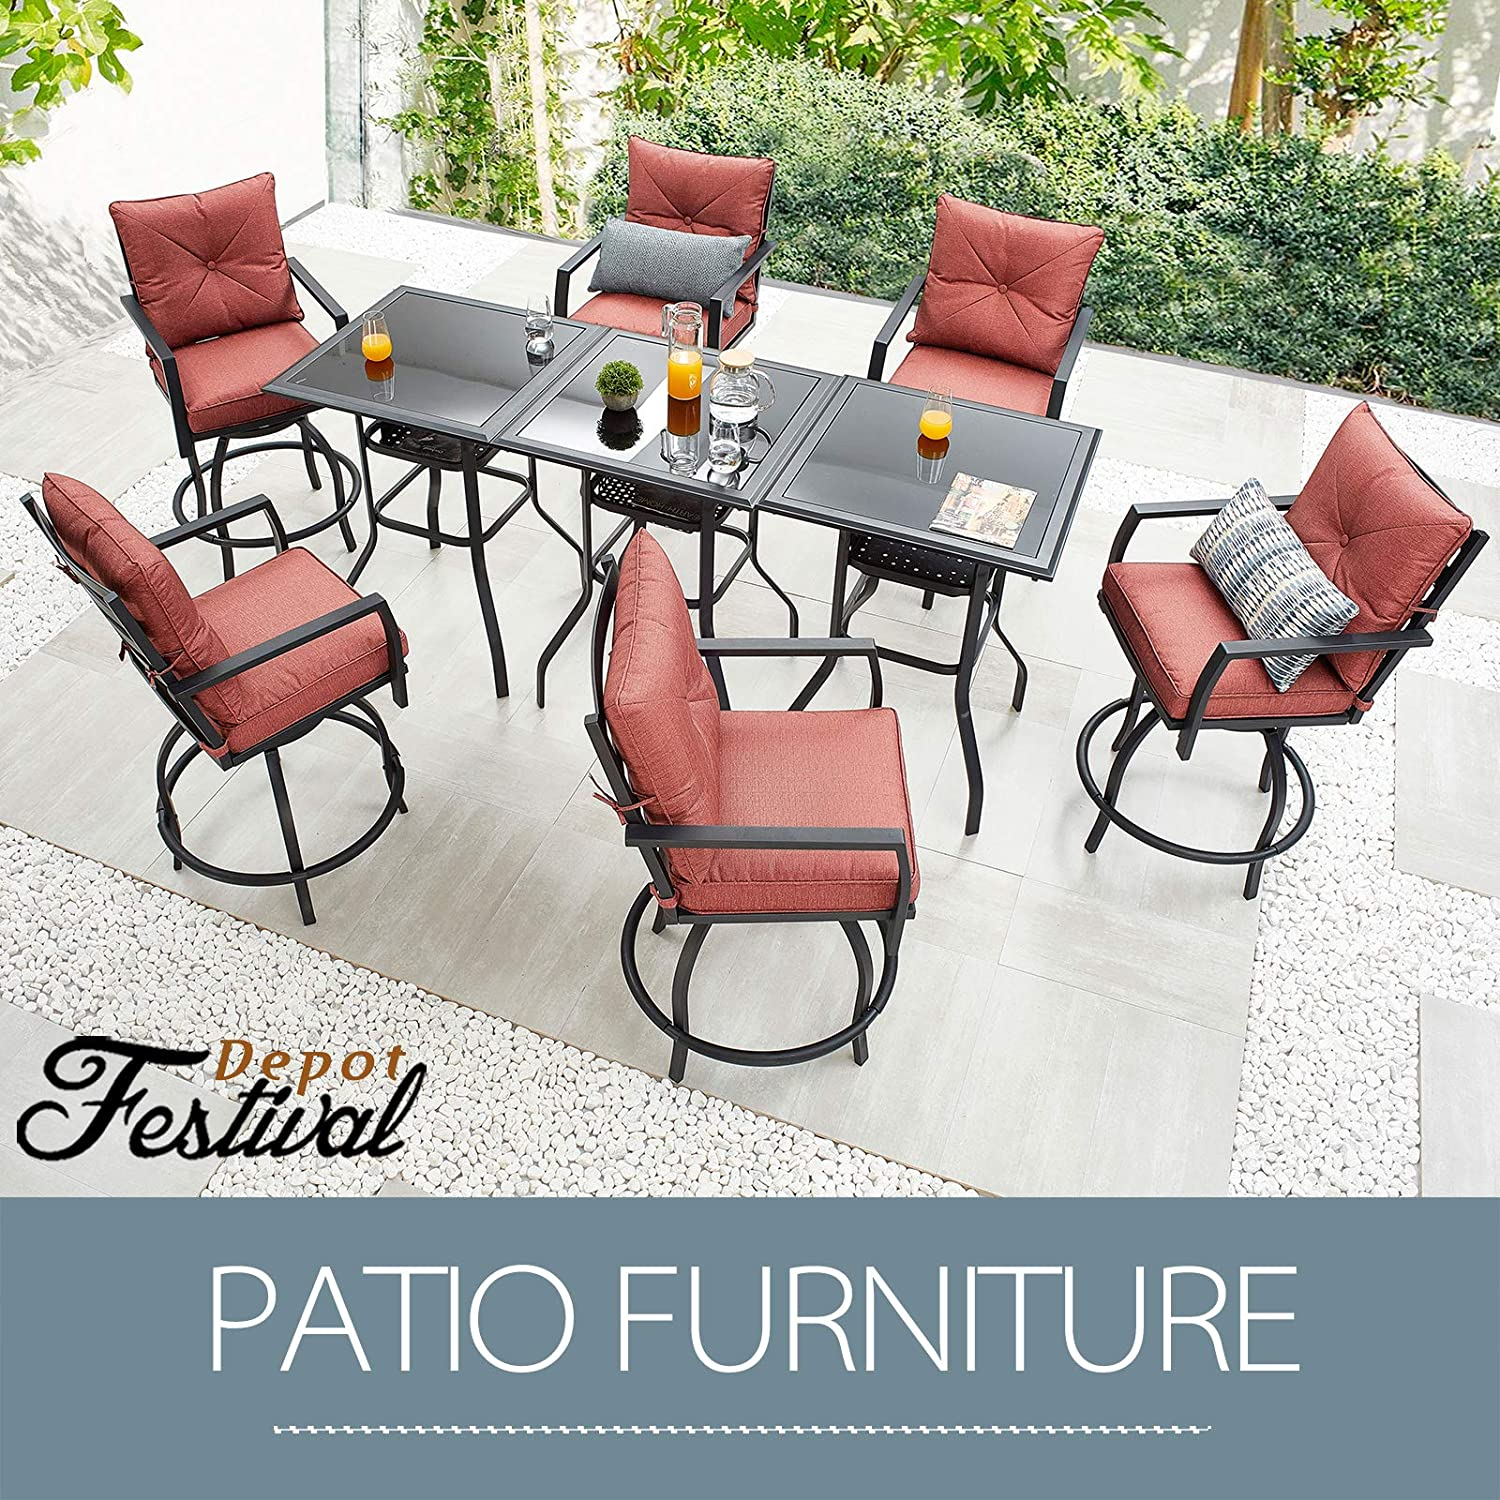 Buy Sports Festival Outdoor Furniture Patio Dining Set 10° Swivel ...